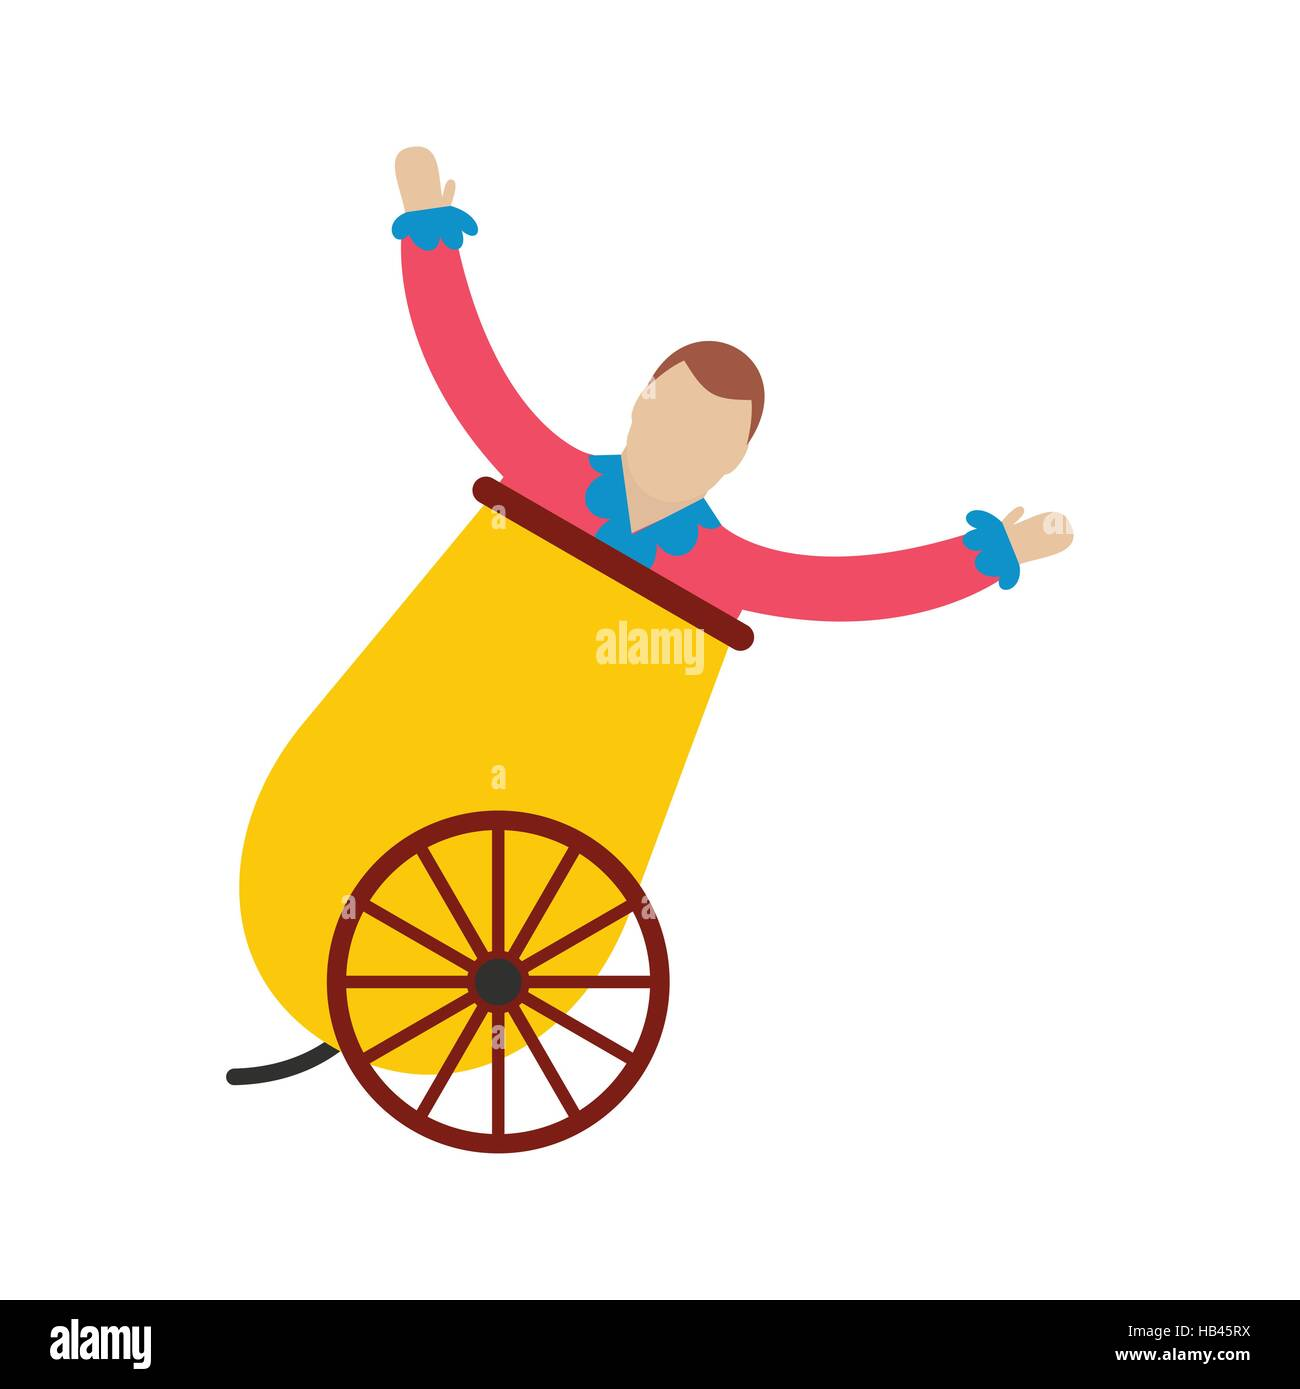 Circus man in cannon icon - Stock Image